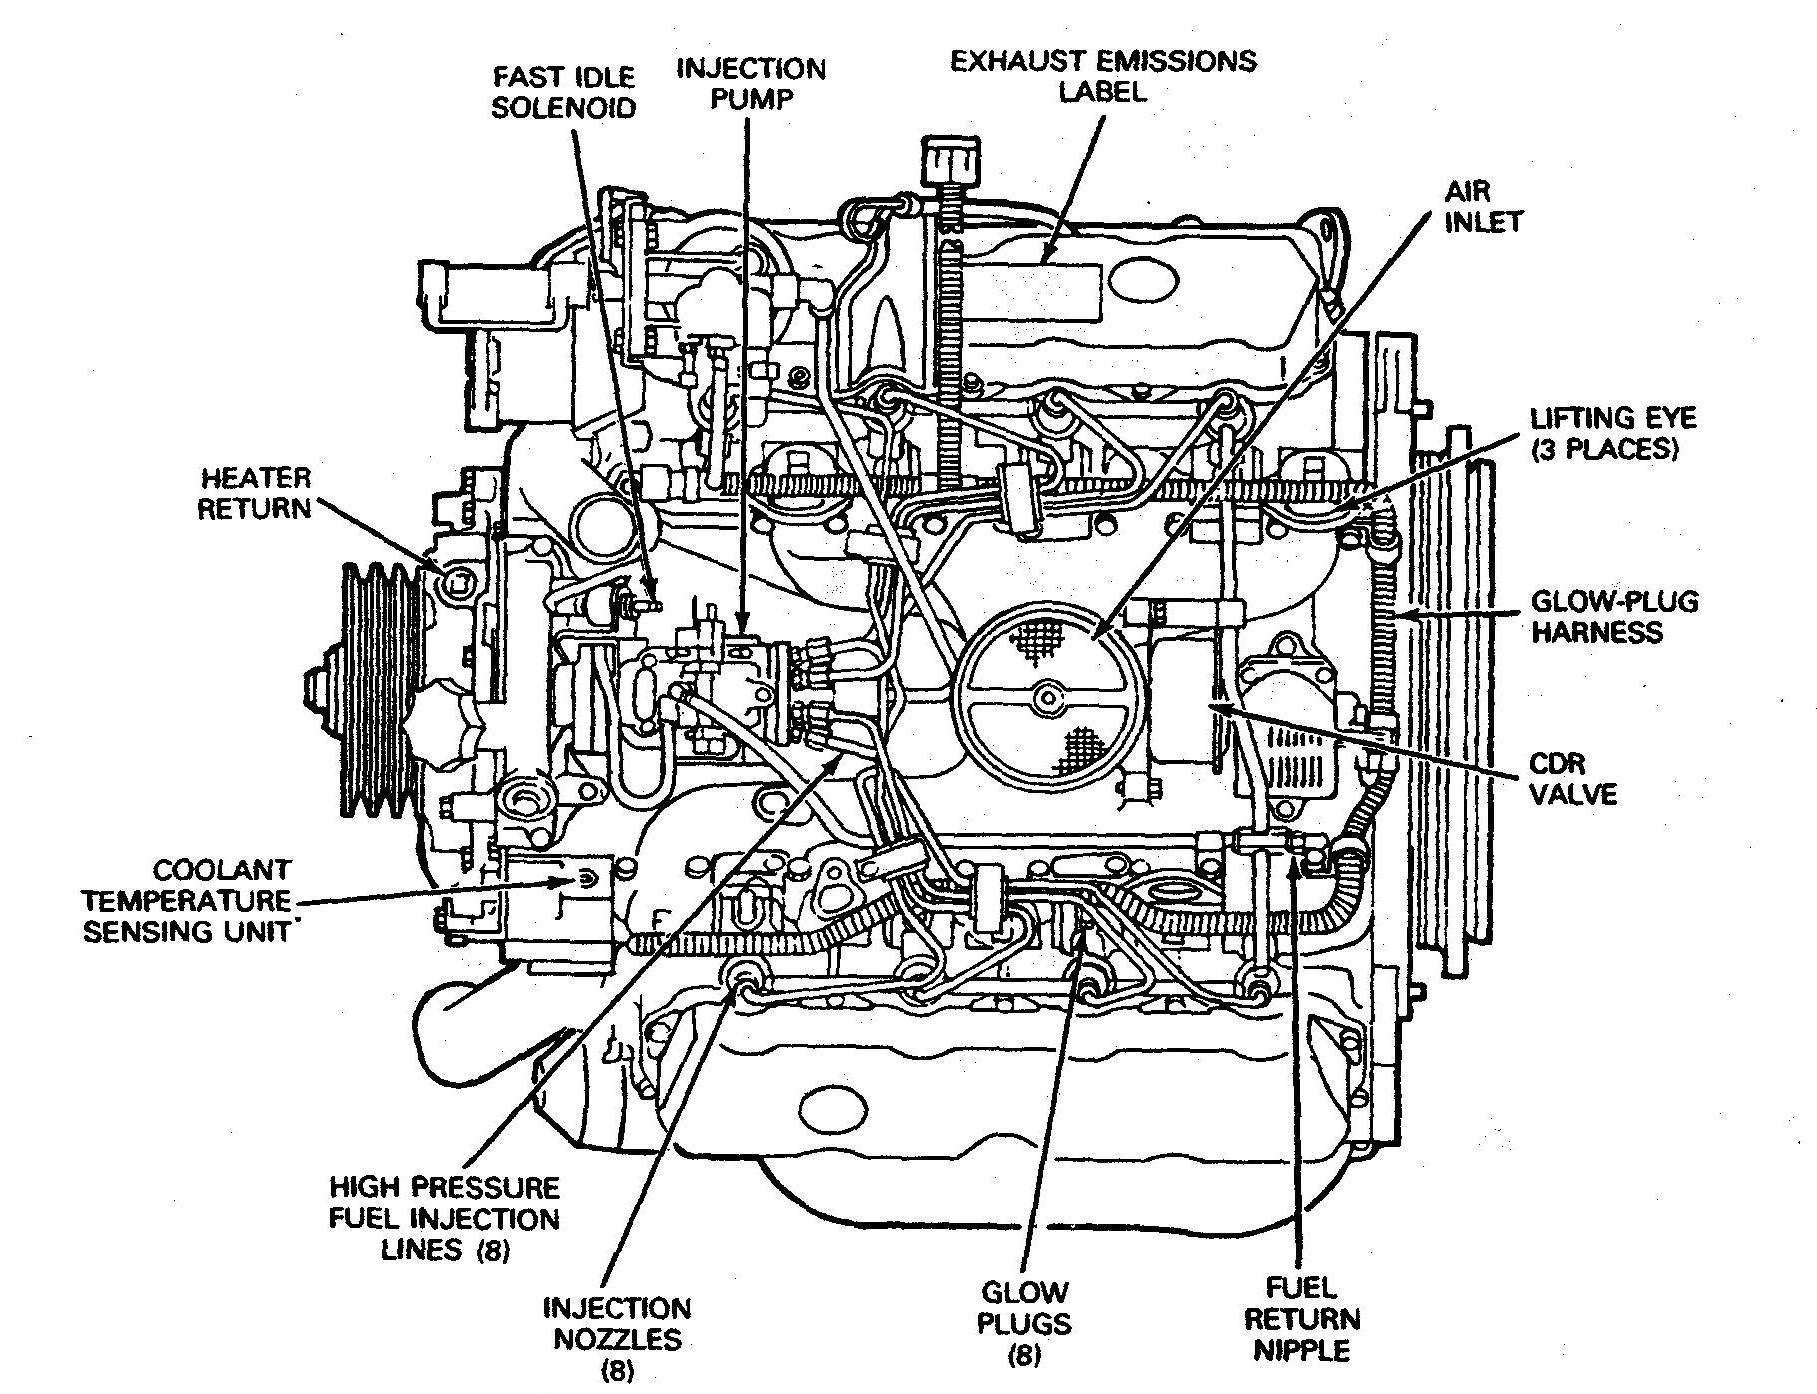 Ford 3 3l Engine Diagram Opinions About Wiring 97 Plymouth Voyager And Jet Drive Dodge 33 2002 Chrysler